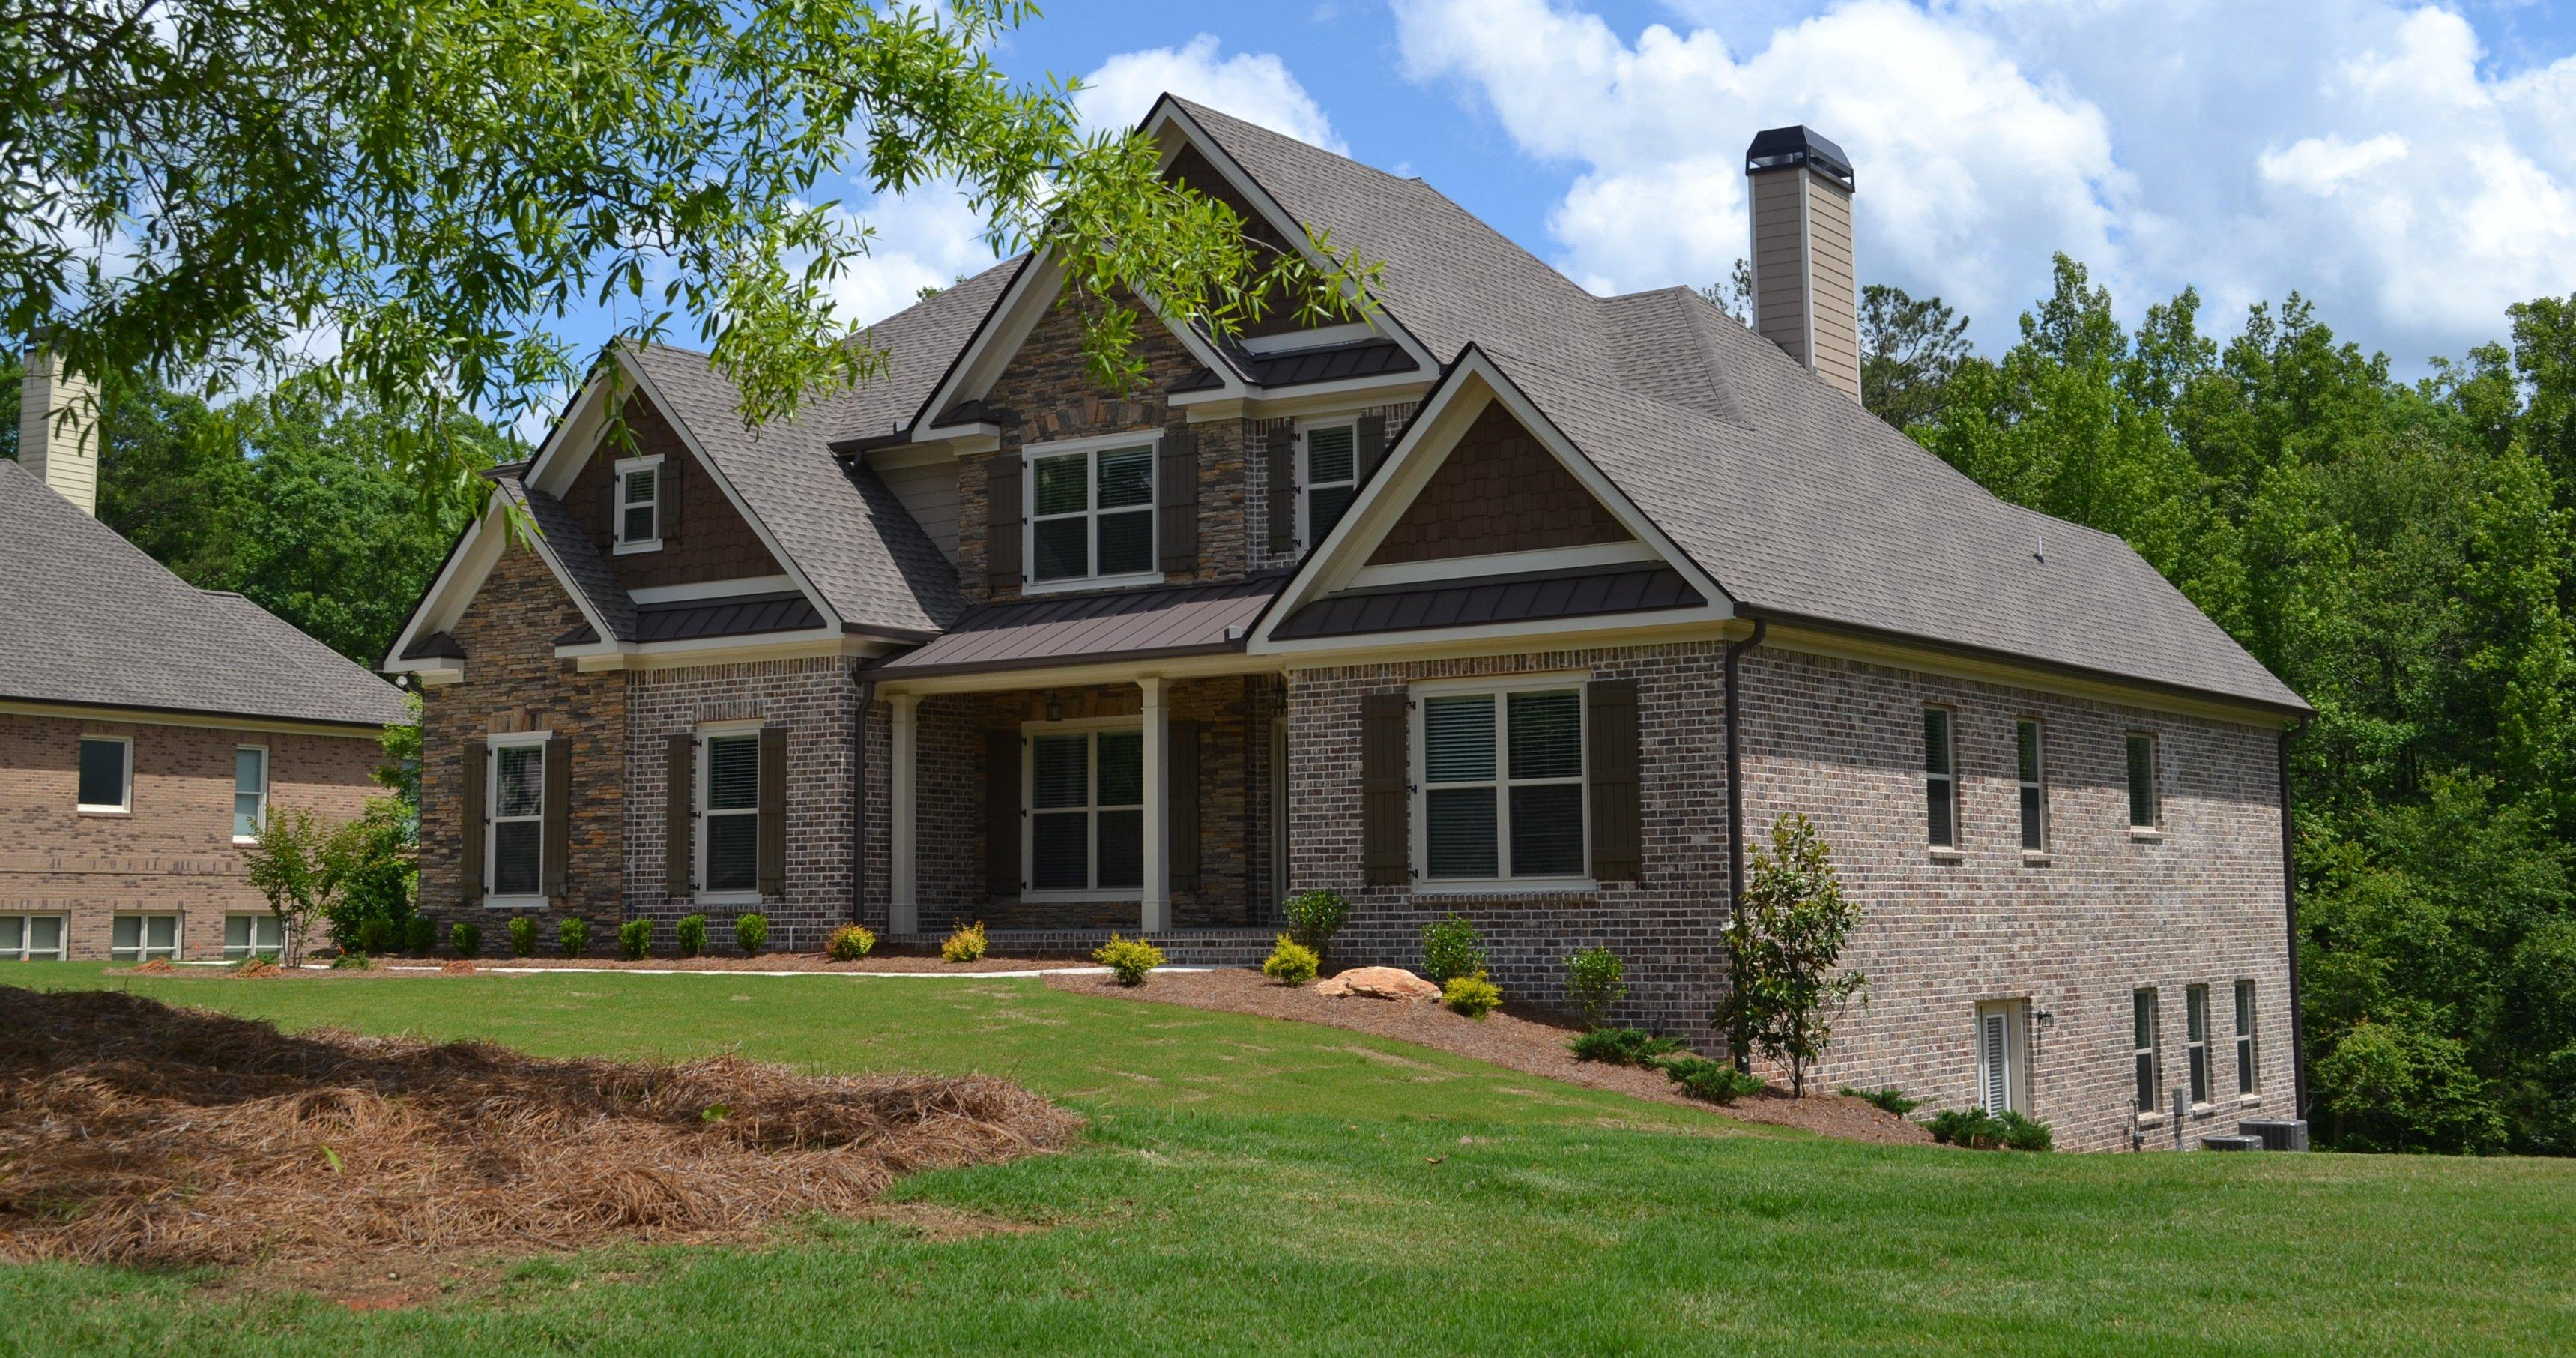 Home warranty plans in south carolina home design and style for Carolina home plans